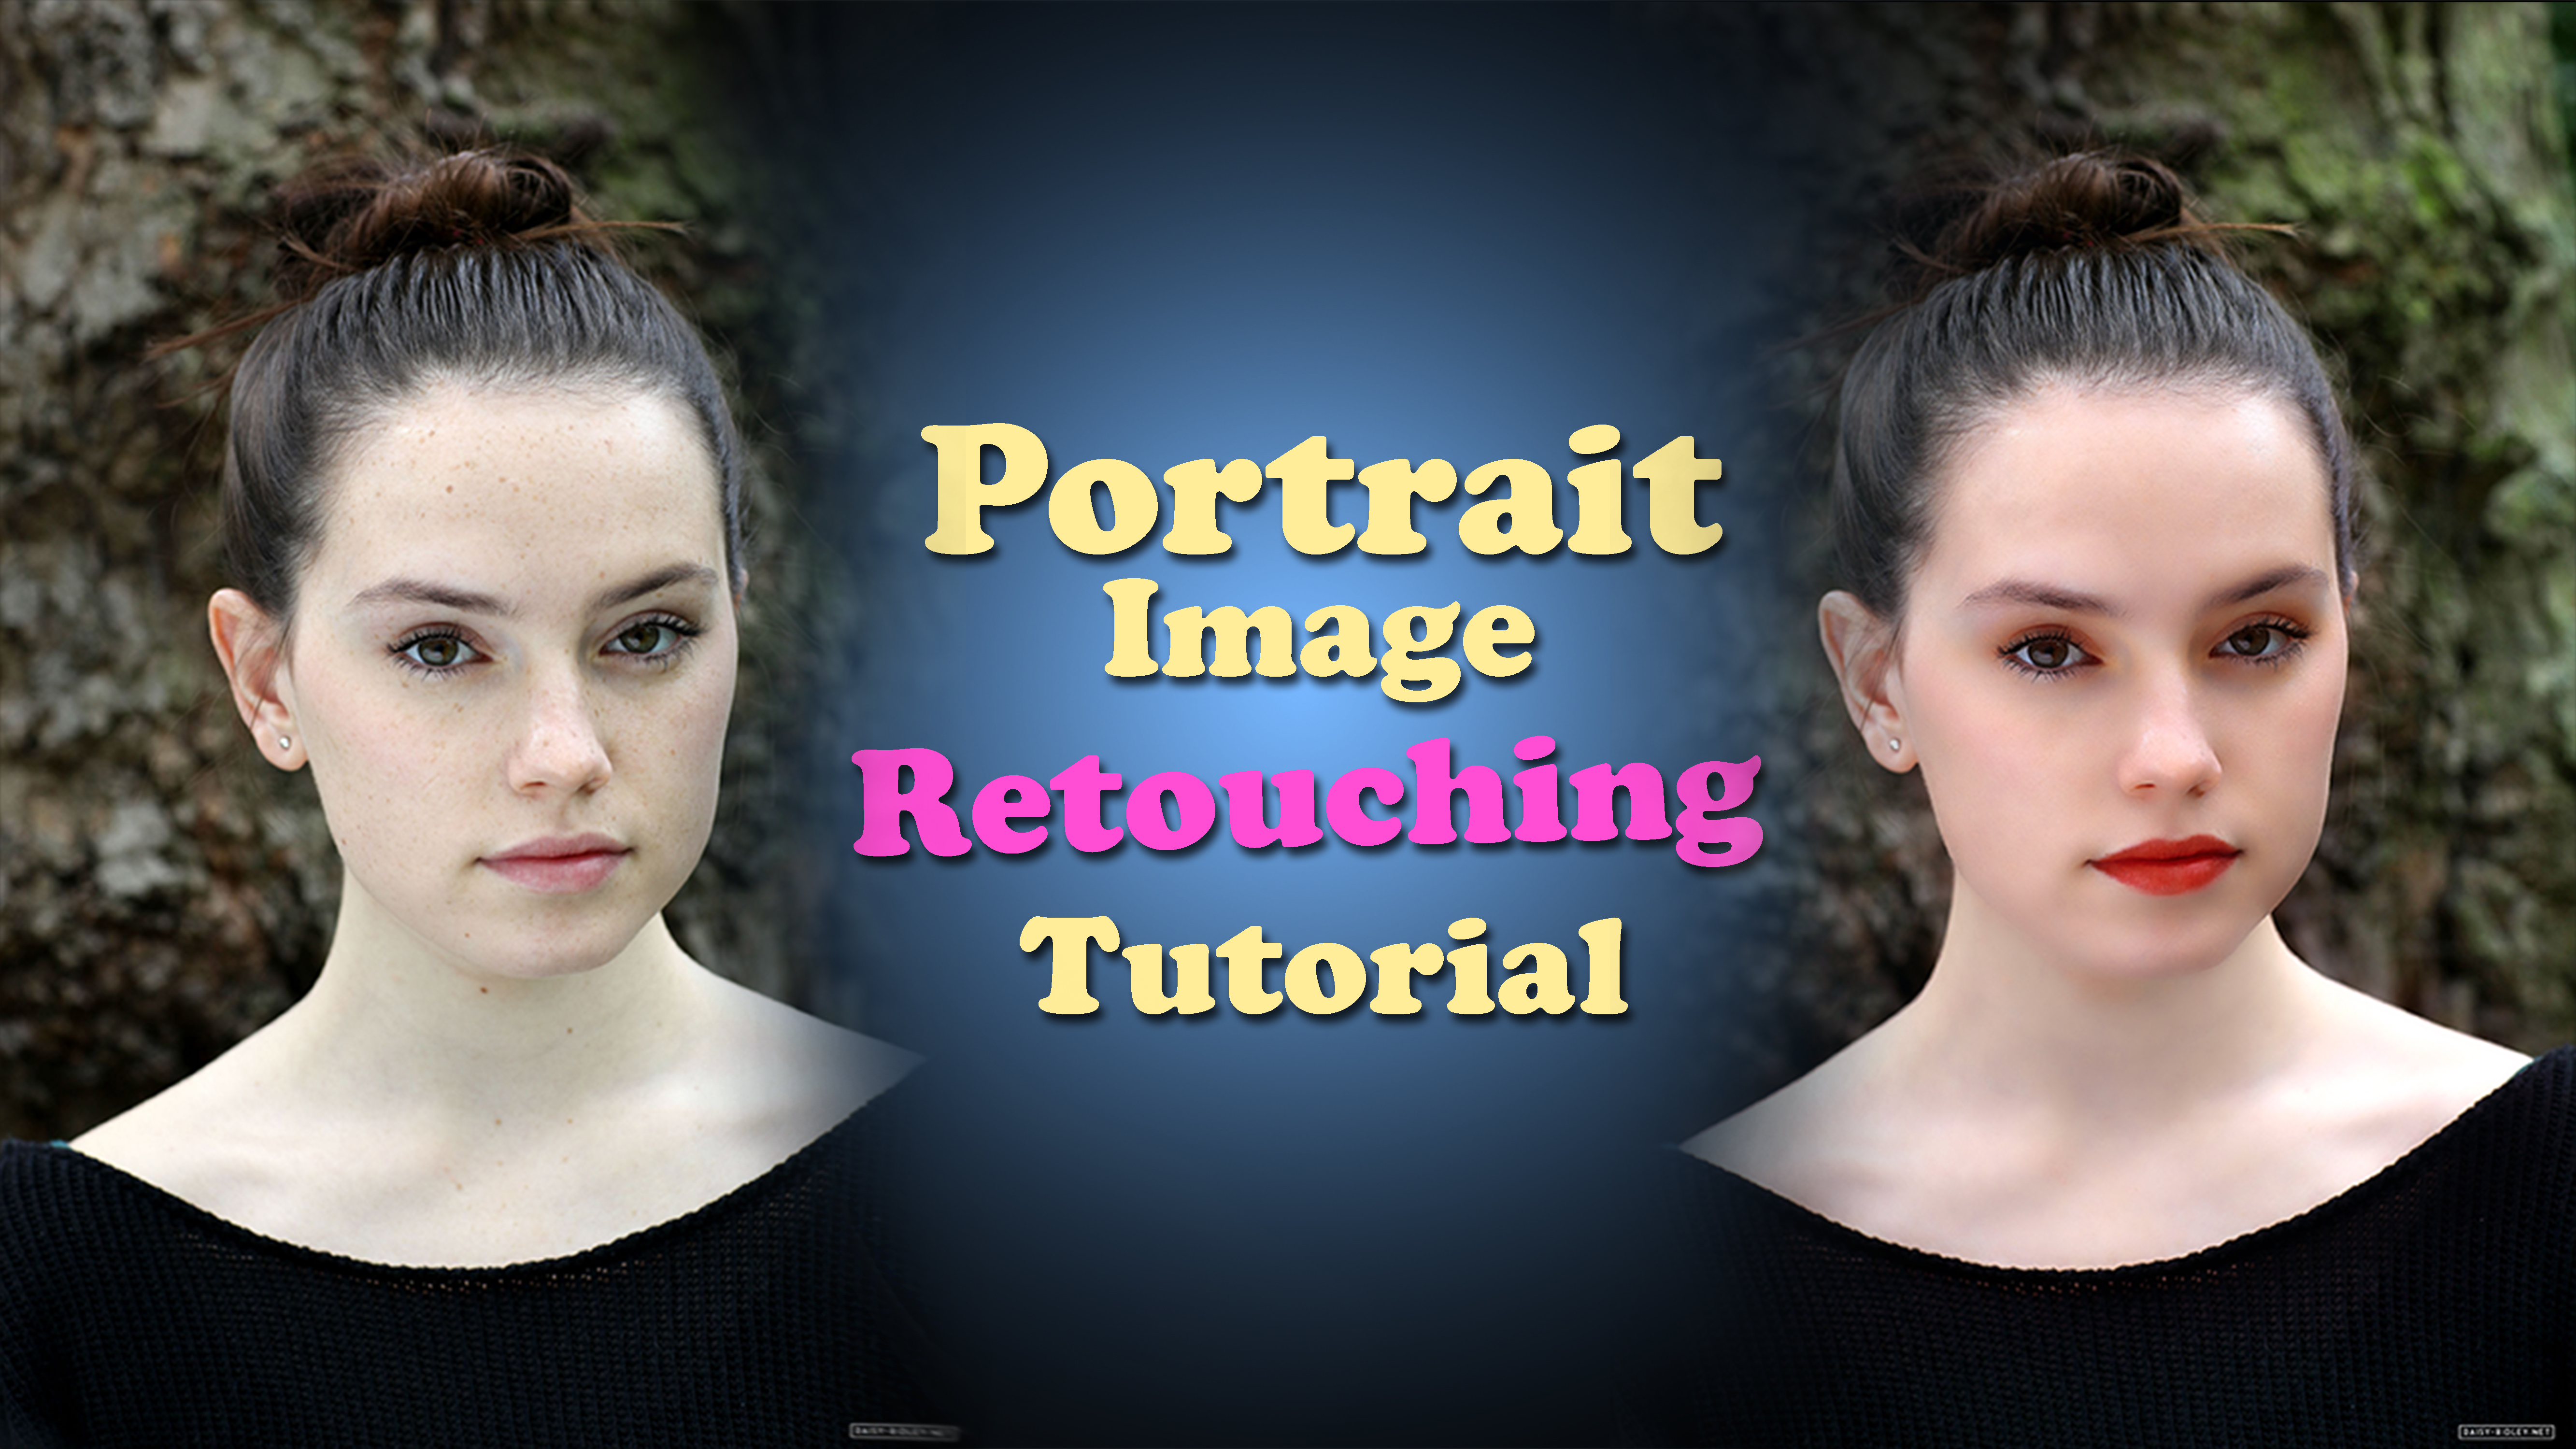 Portrait Image Retouching Tutorial